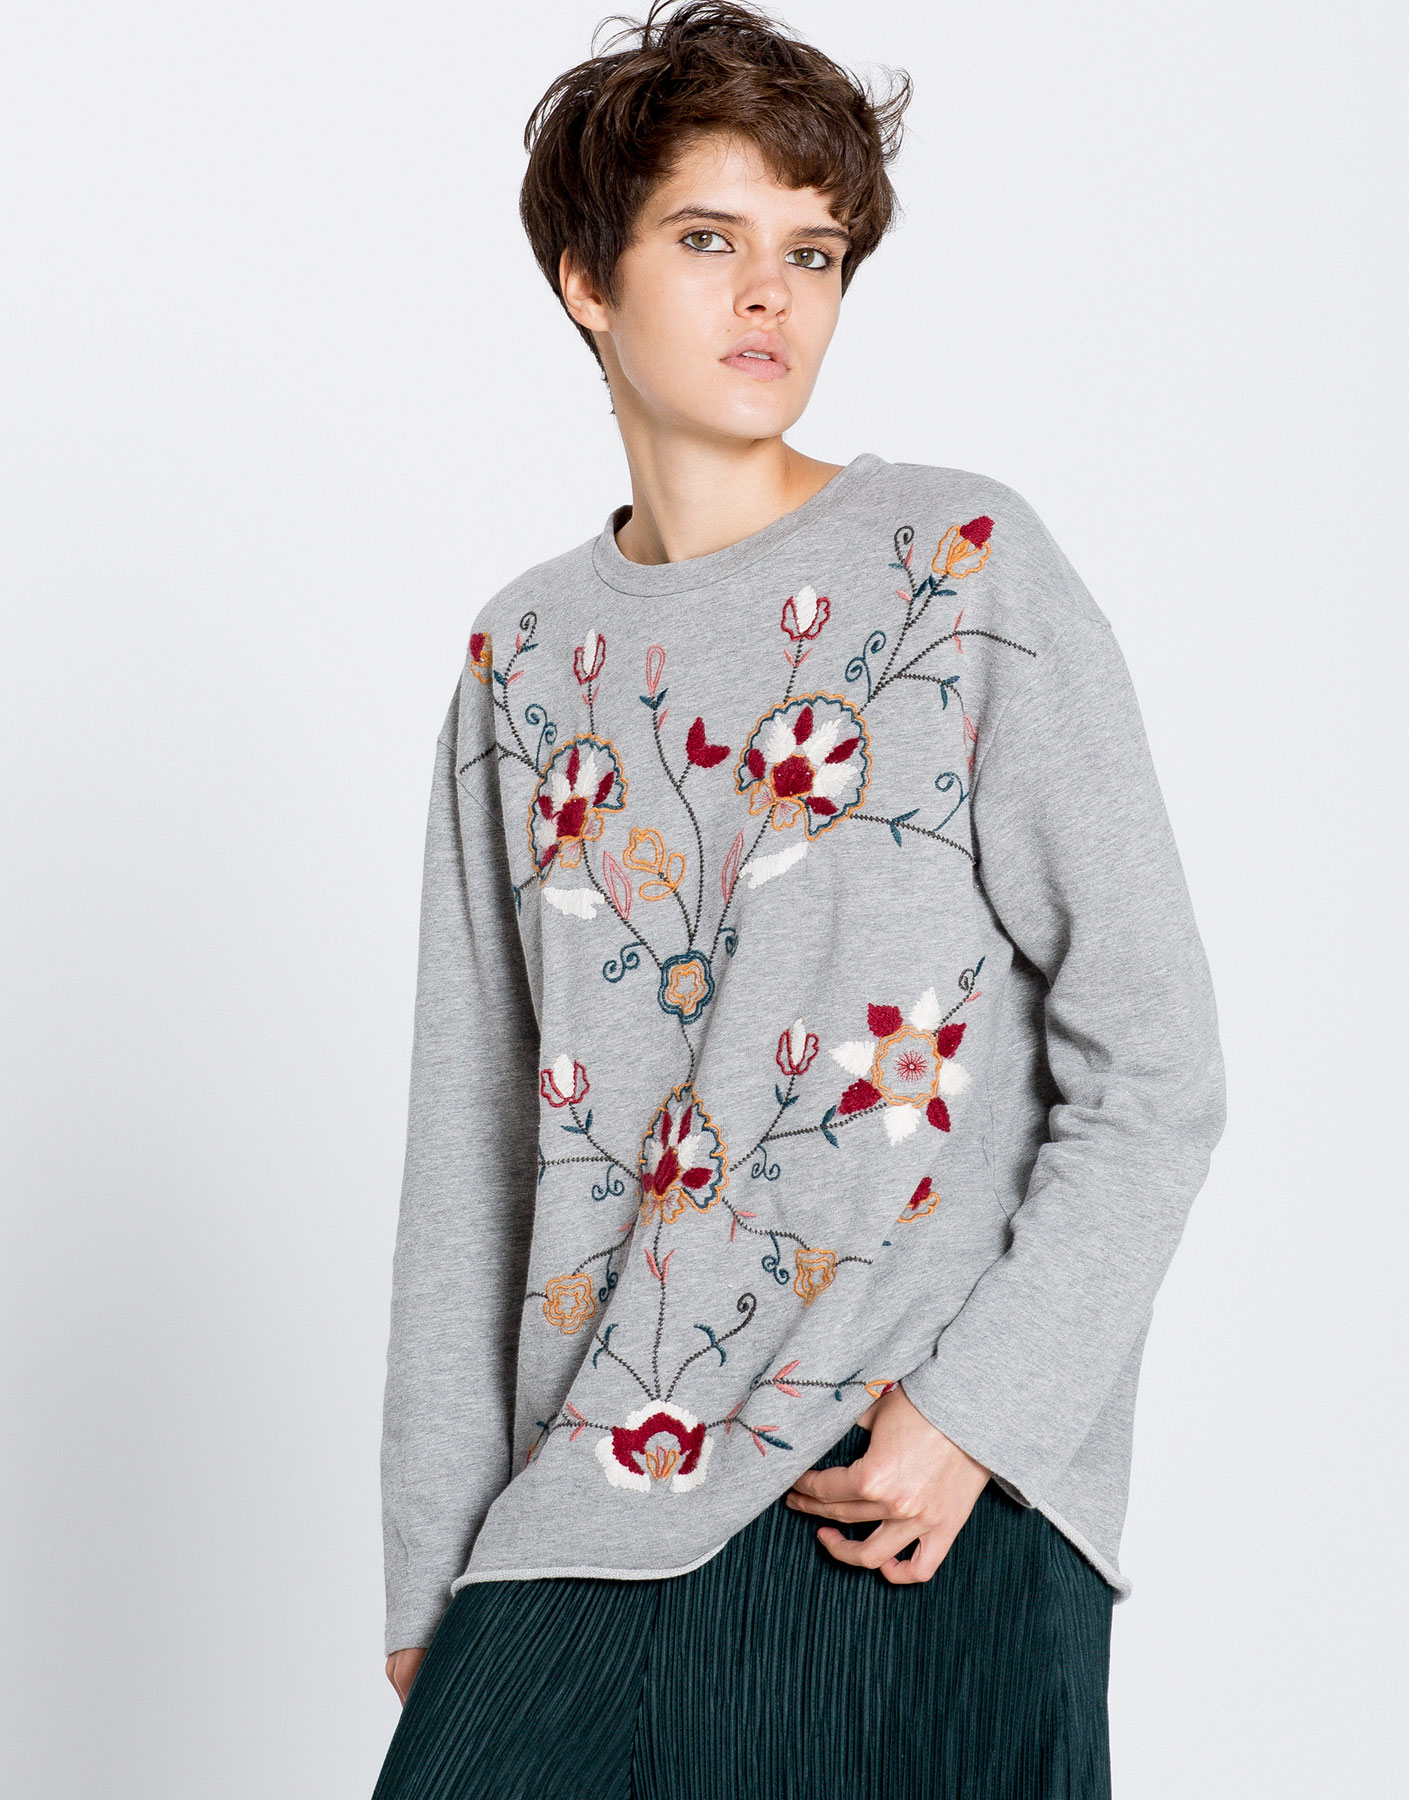 Front floral embroidered sweatshirt